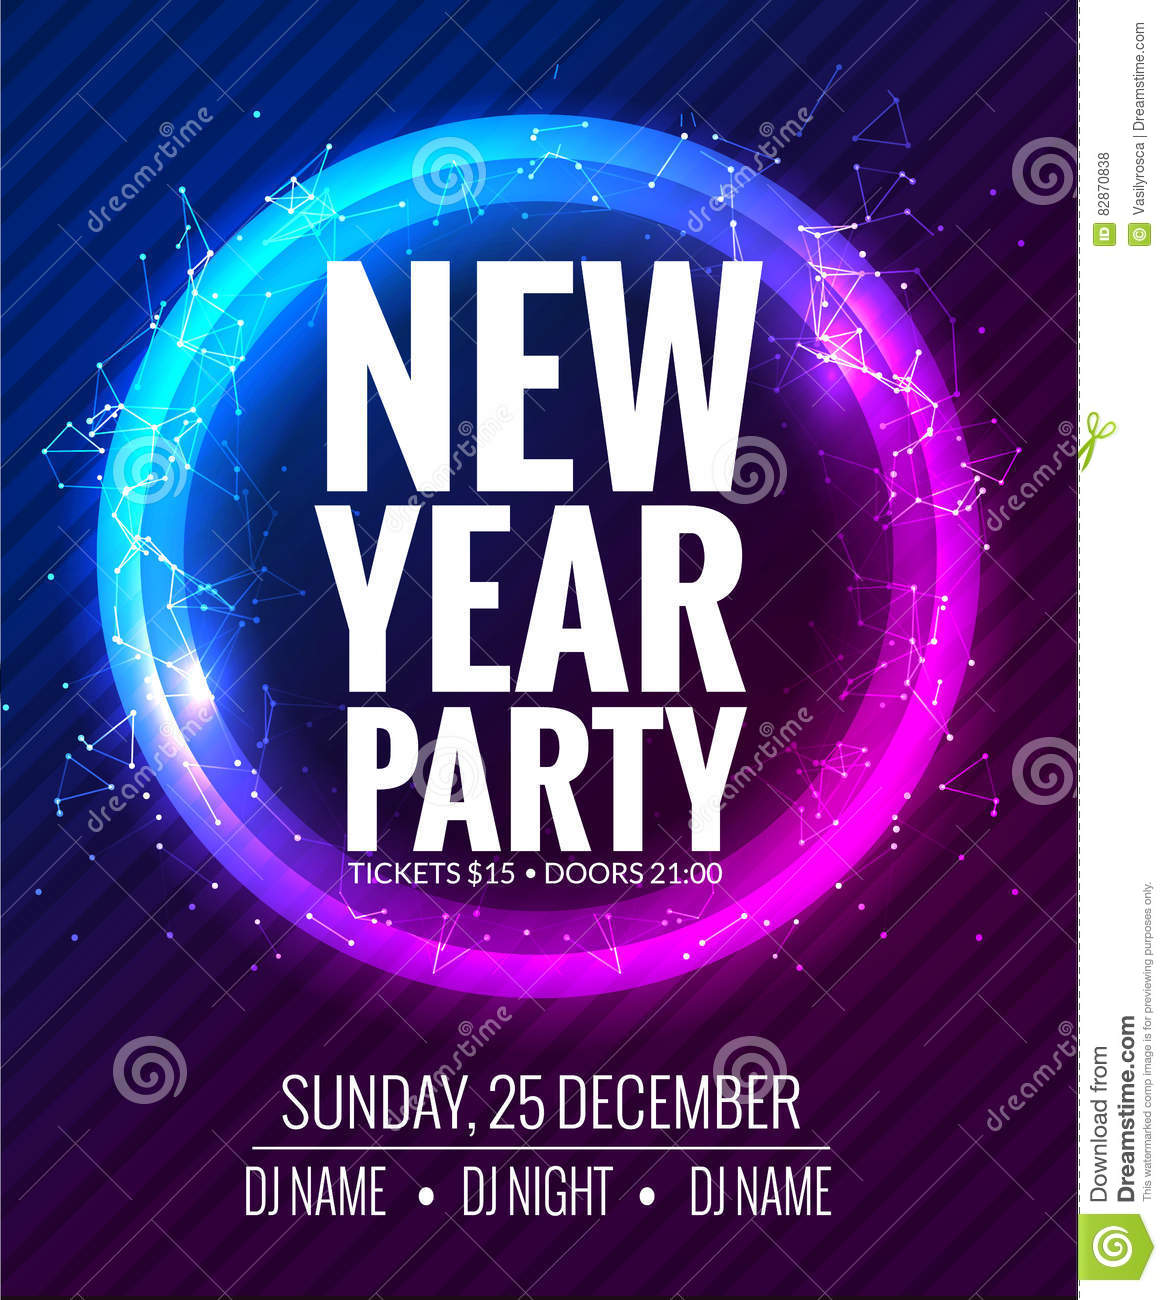 new year party and christmas party poster template design disco night banner flyer new year holiday celebration invitation